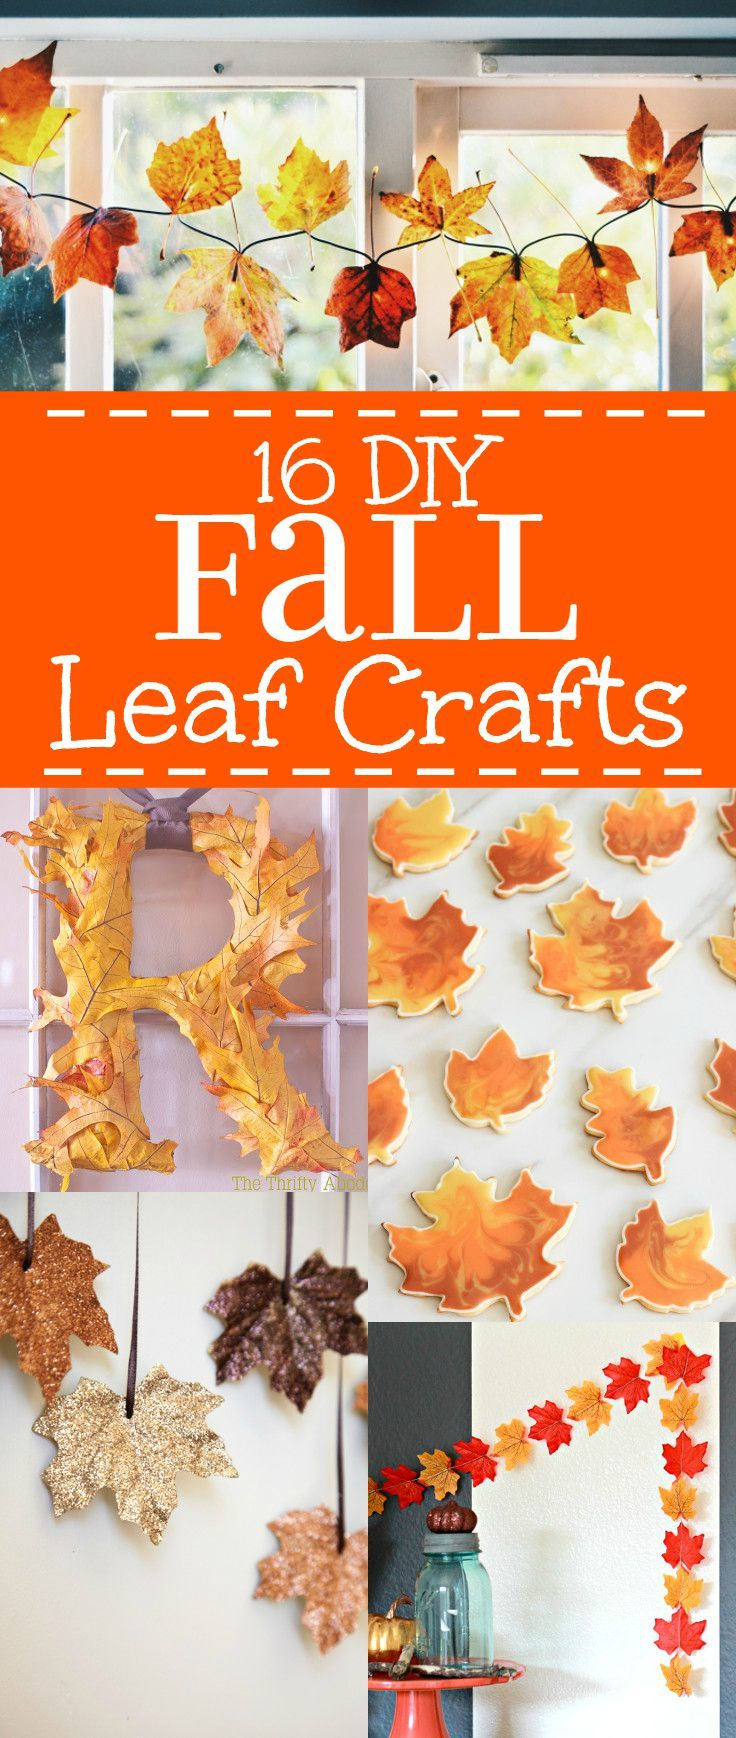 Fall crafts for adults to make - 16 Fall Leaf Crafts